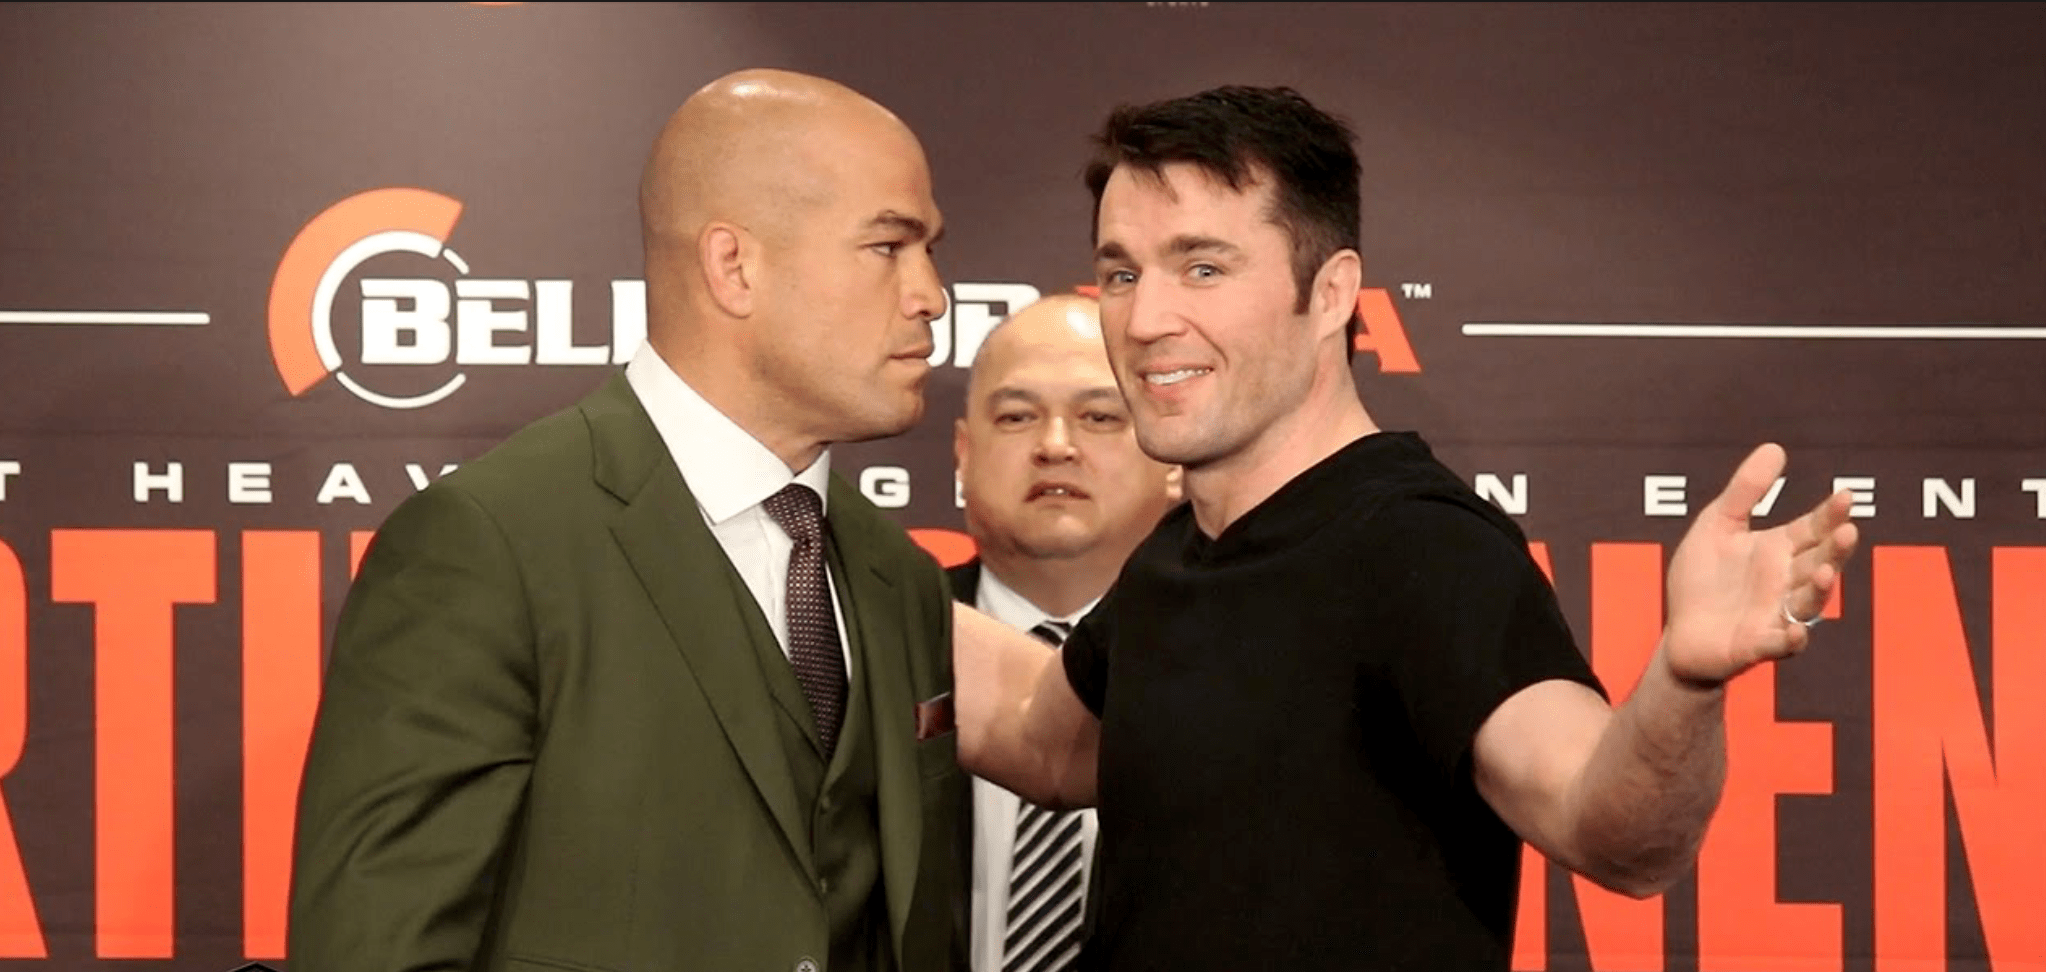 Tito Ortiz Says The Fight With Chael Sonnen Is On